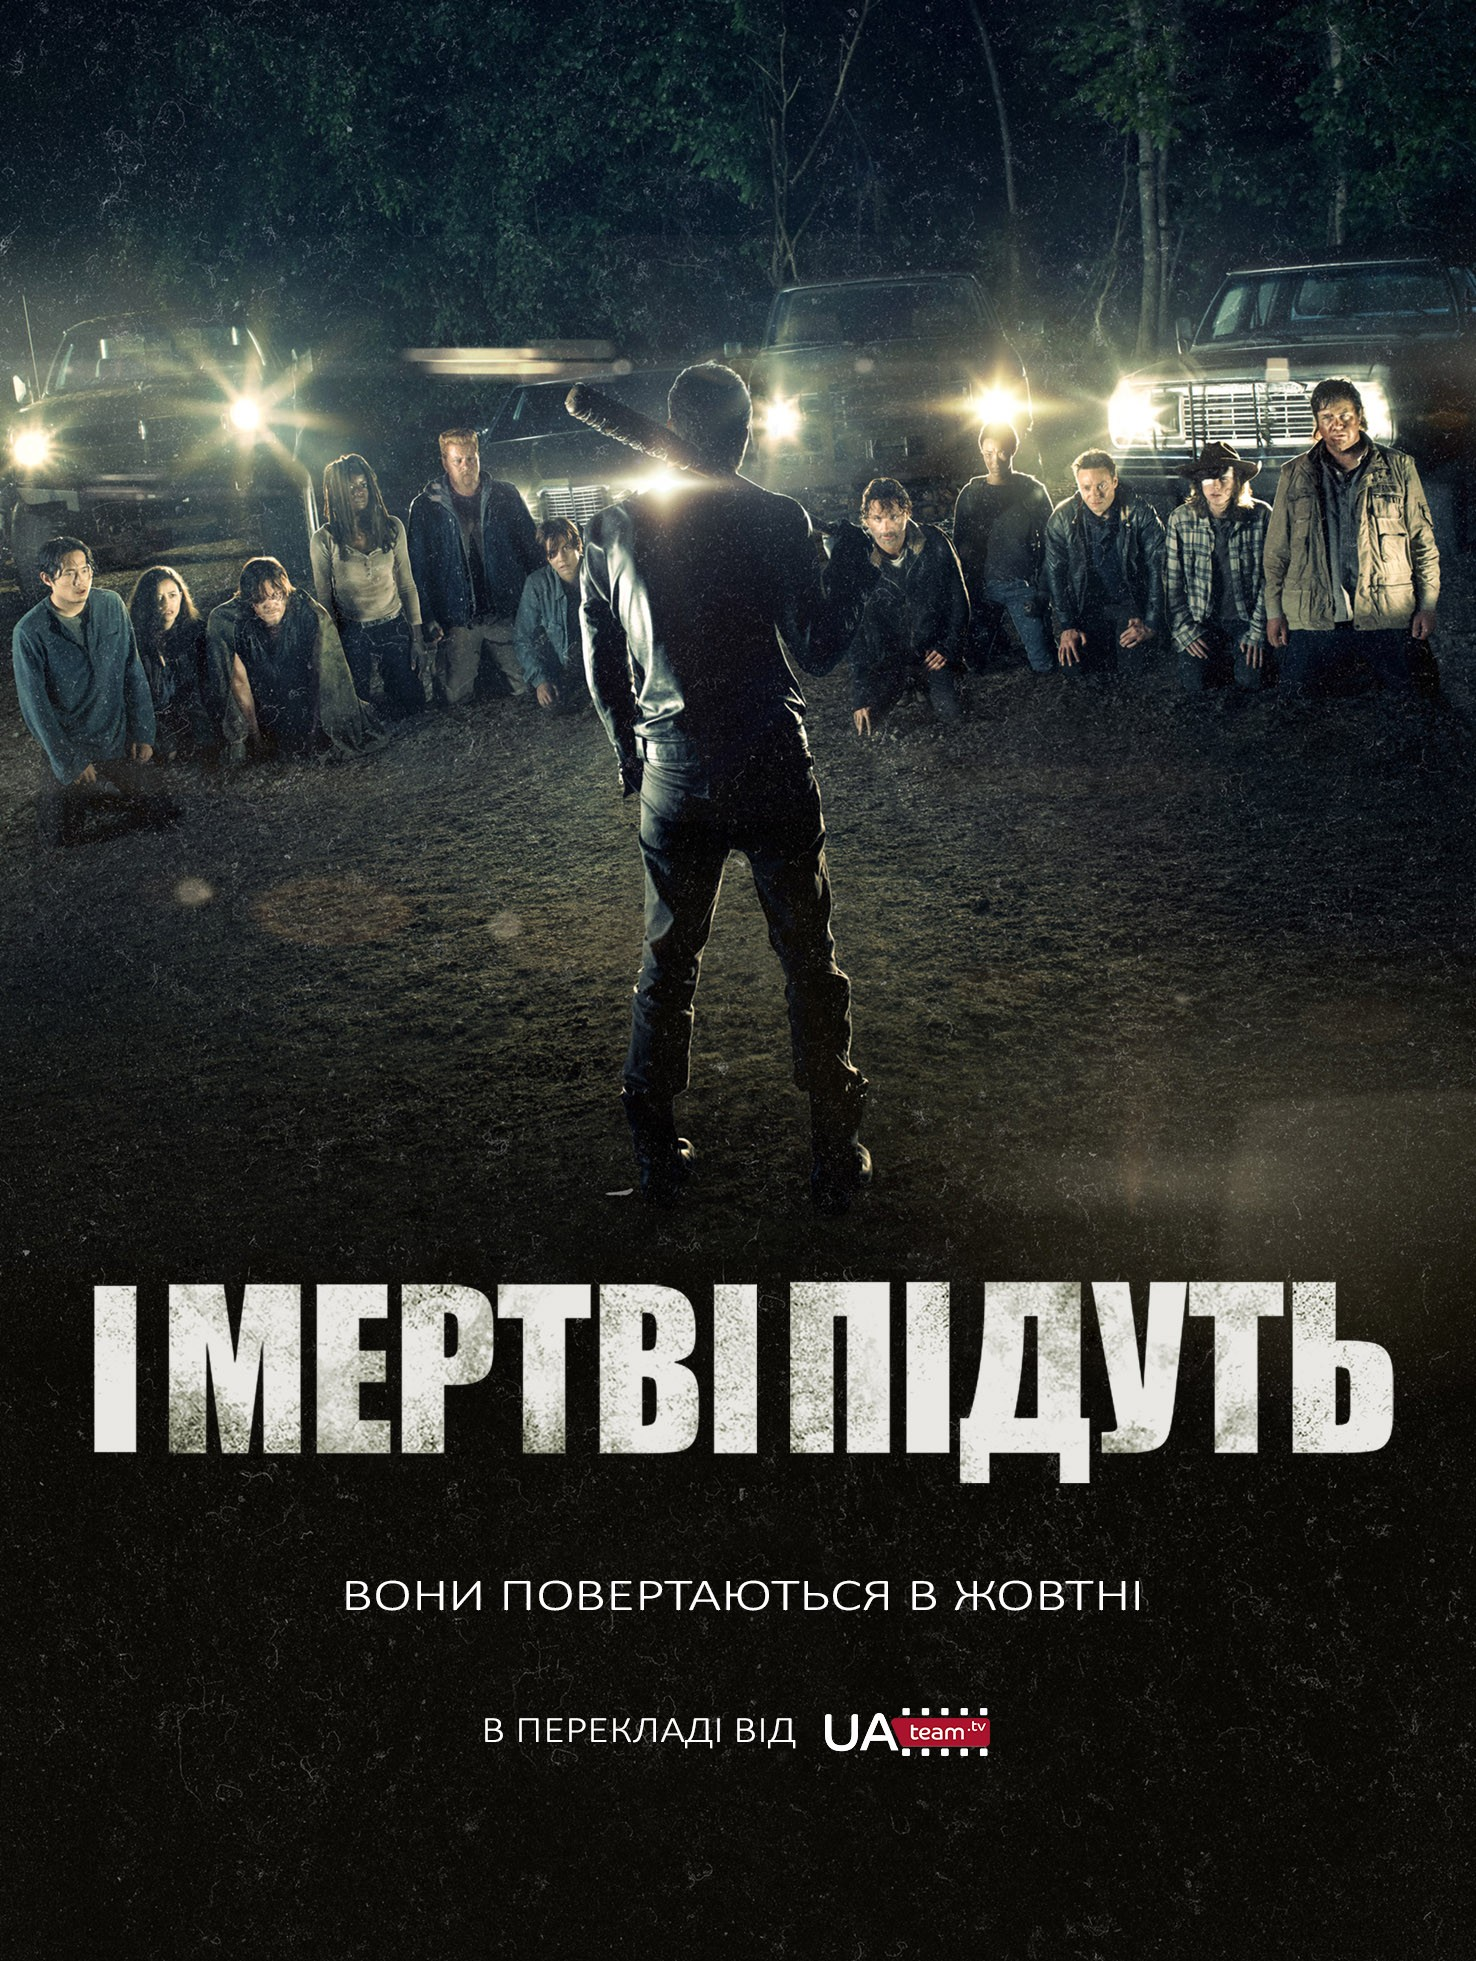 І мертві підуть (Сезон 8, Серія 1-8) / The Walking Dead (Season 8, Episodes 1-8) (2017-2018) 720p Ukr/Eng | Sub Eng